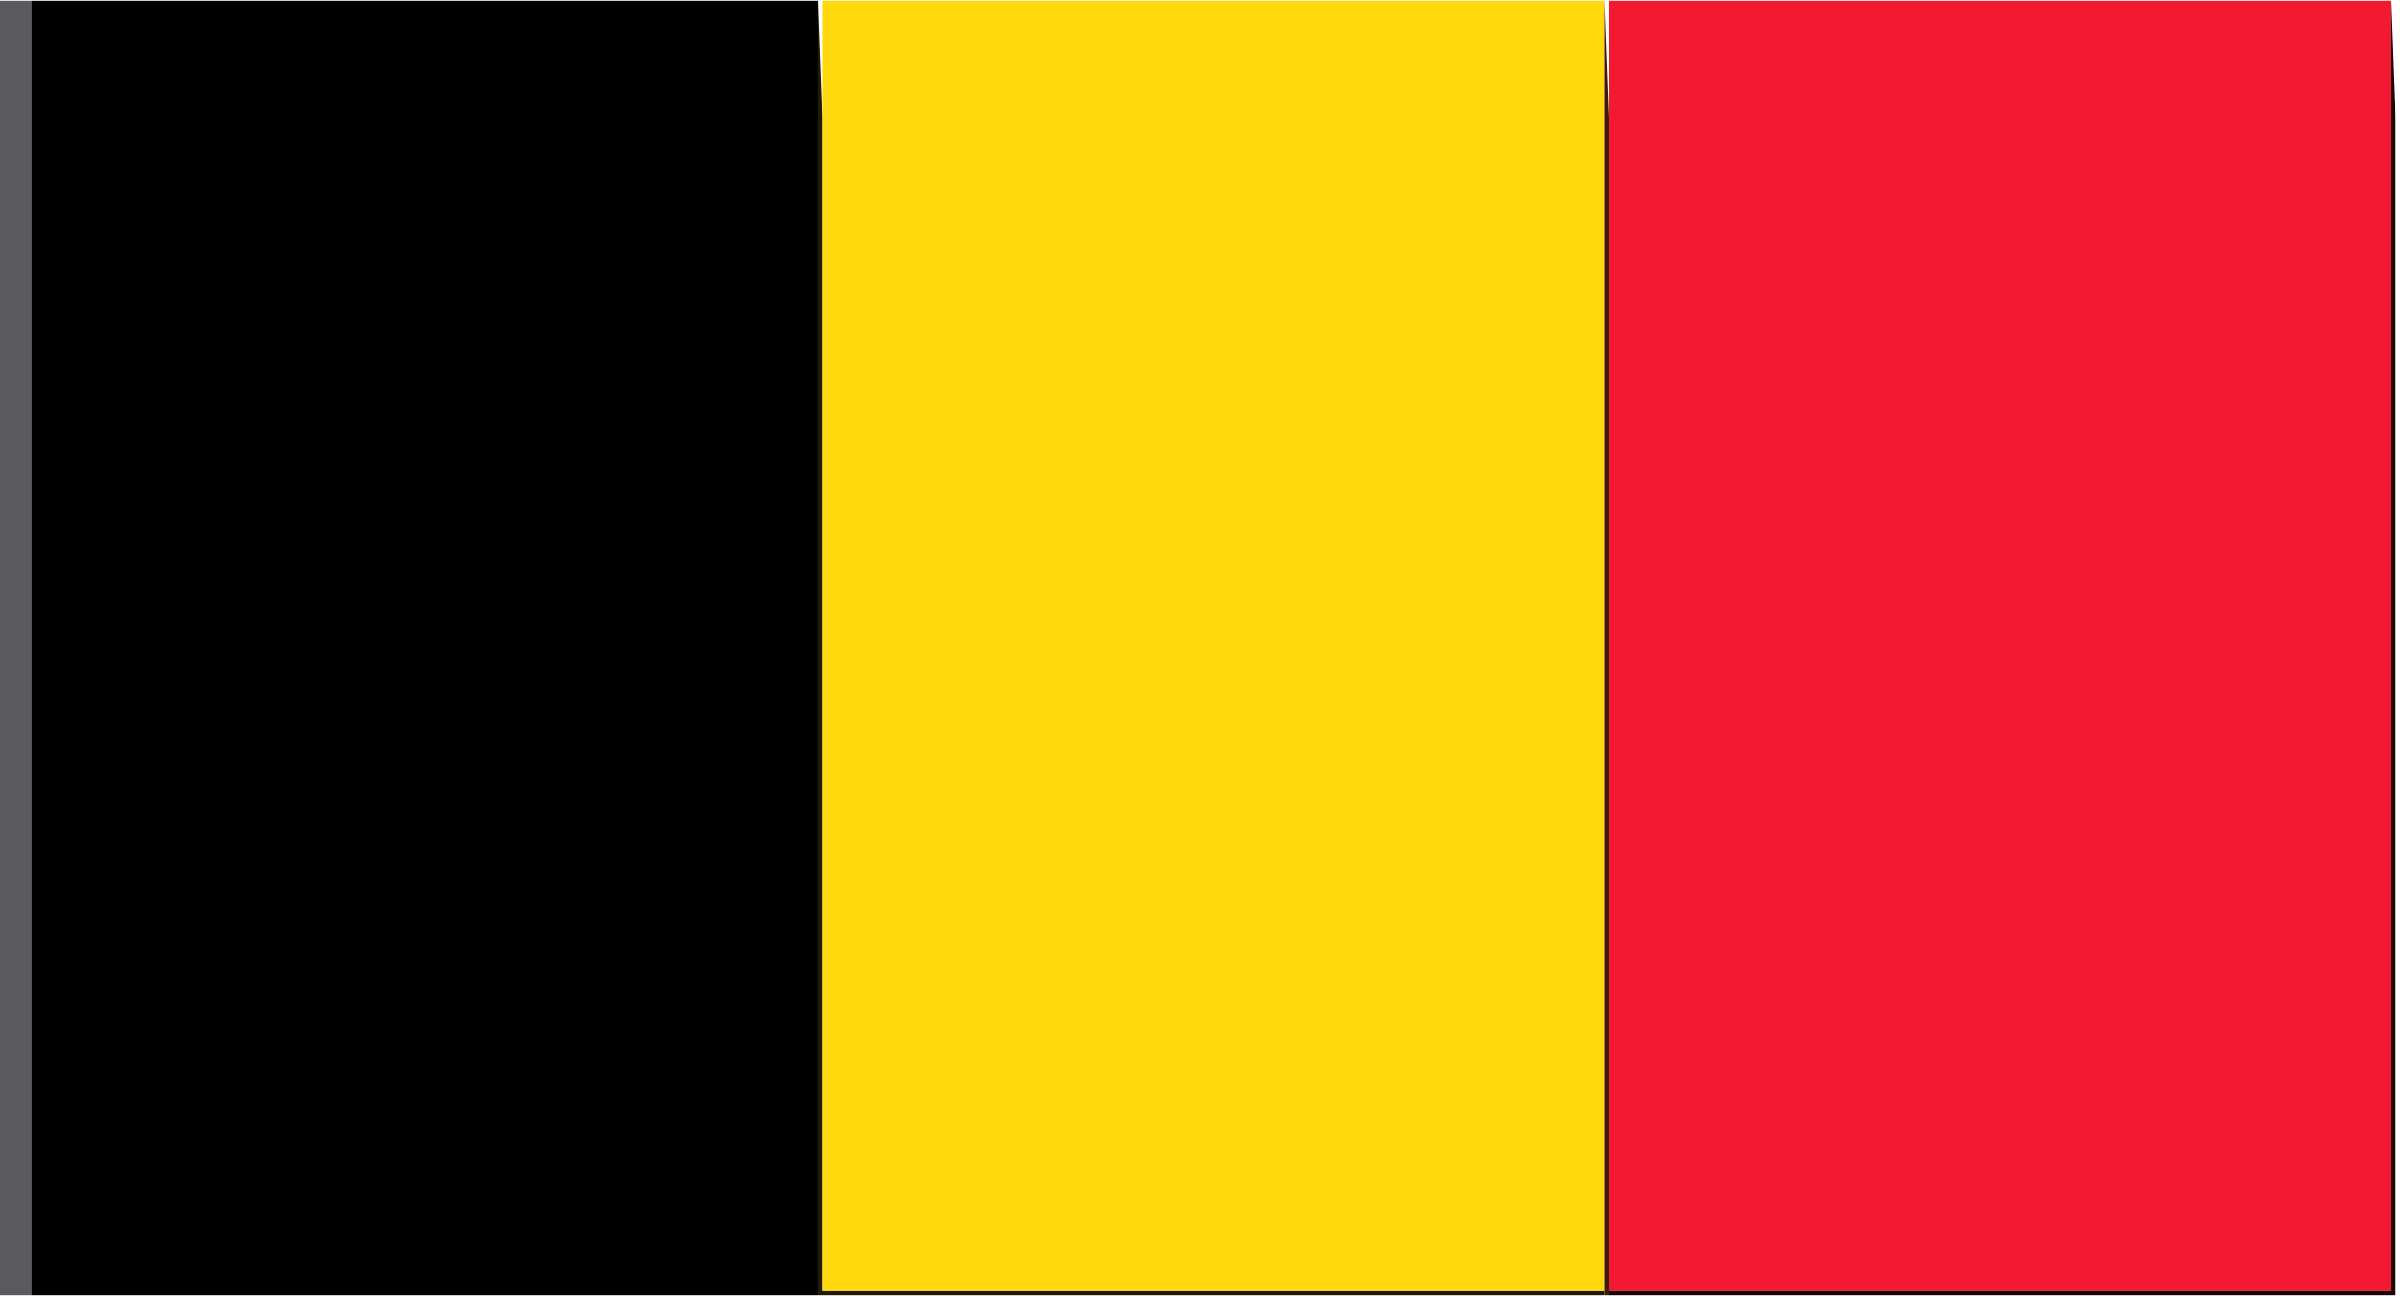 Flag of Belguim by Joesph